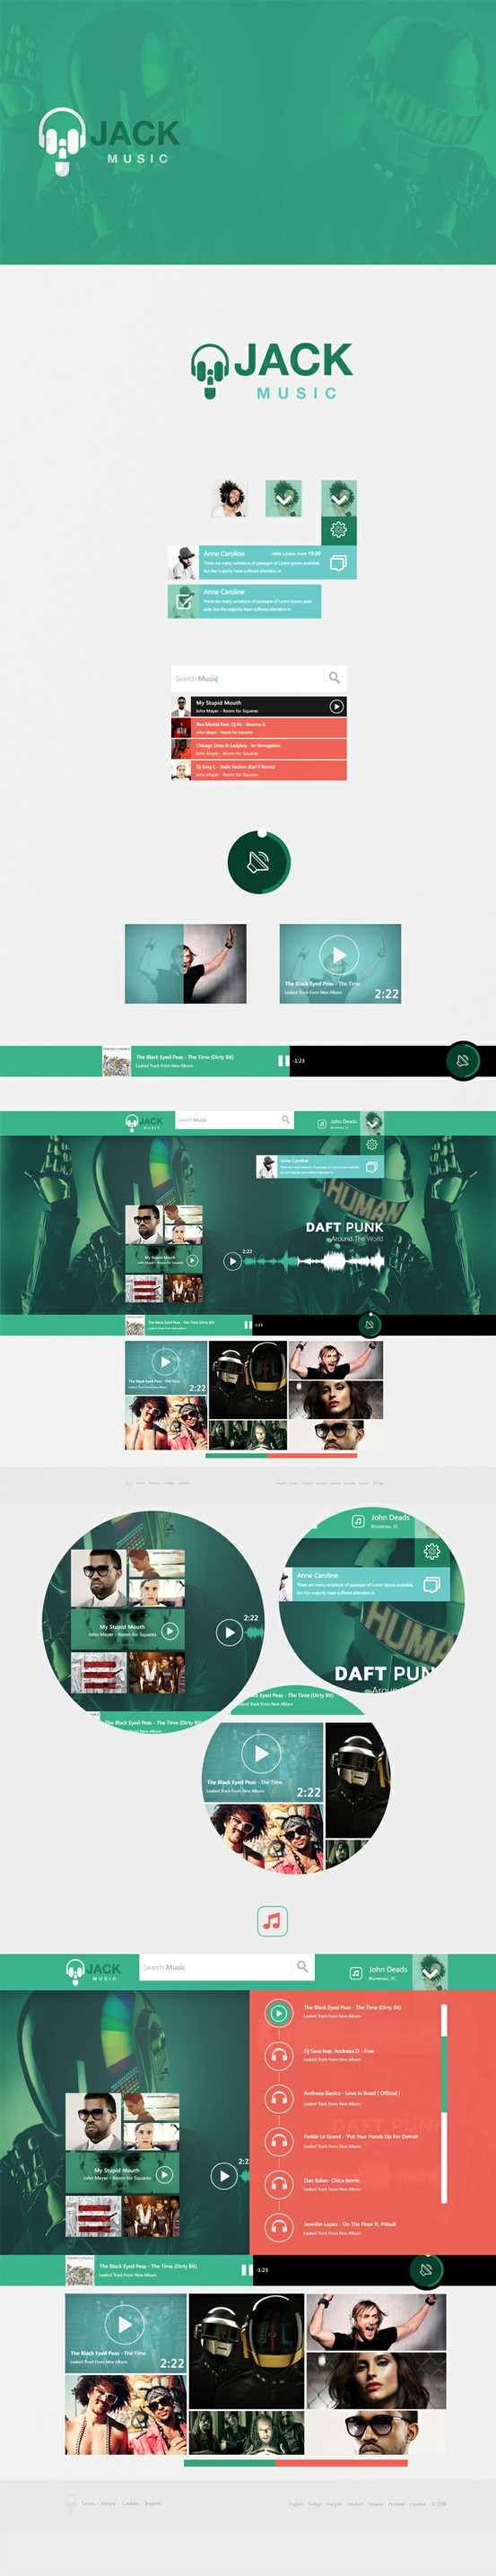 Music Jack (web site concept) by Cüneyt SEN, via Behance